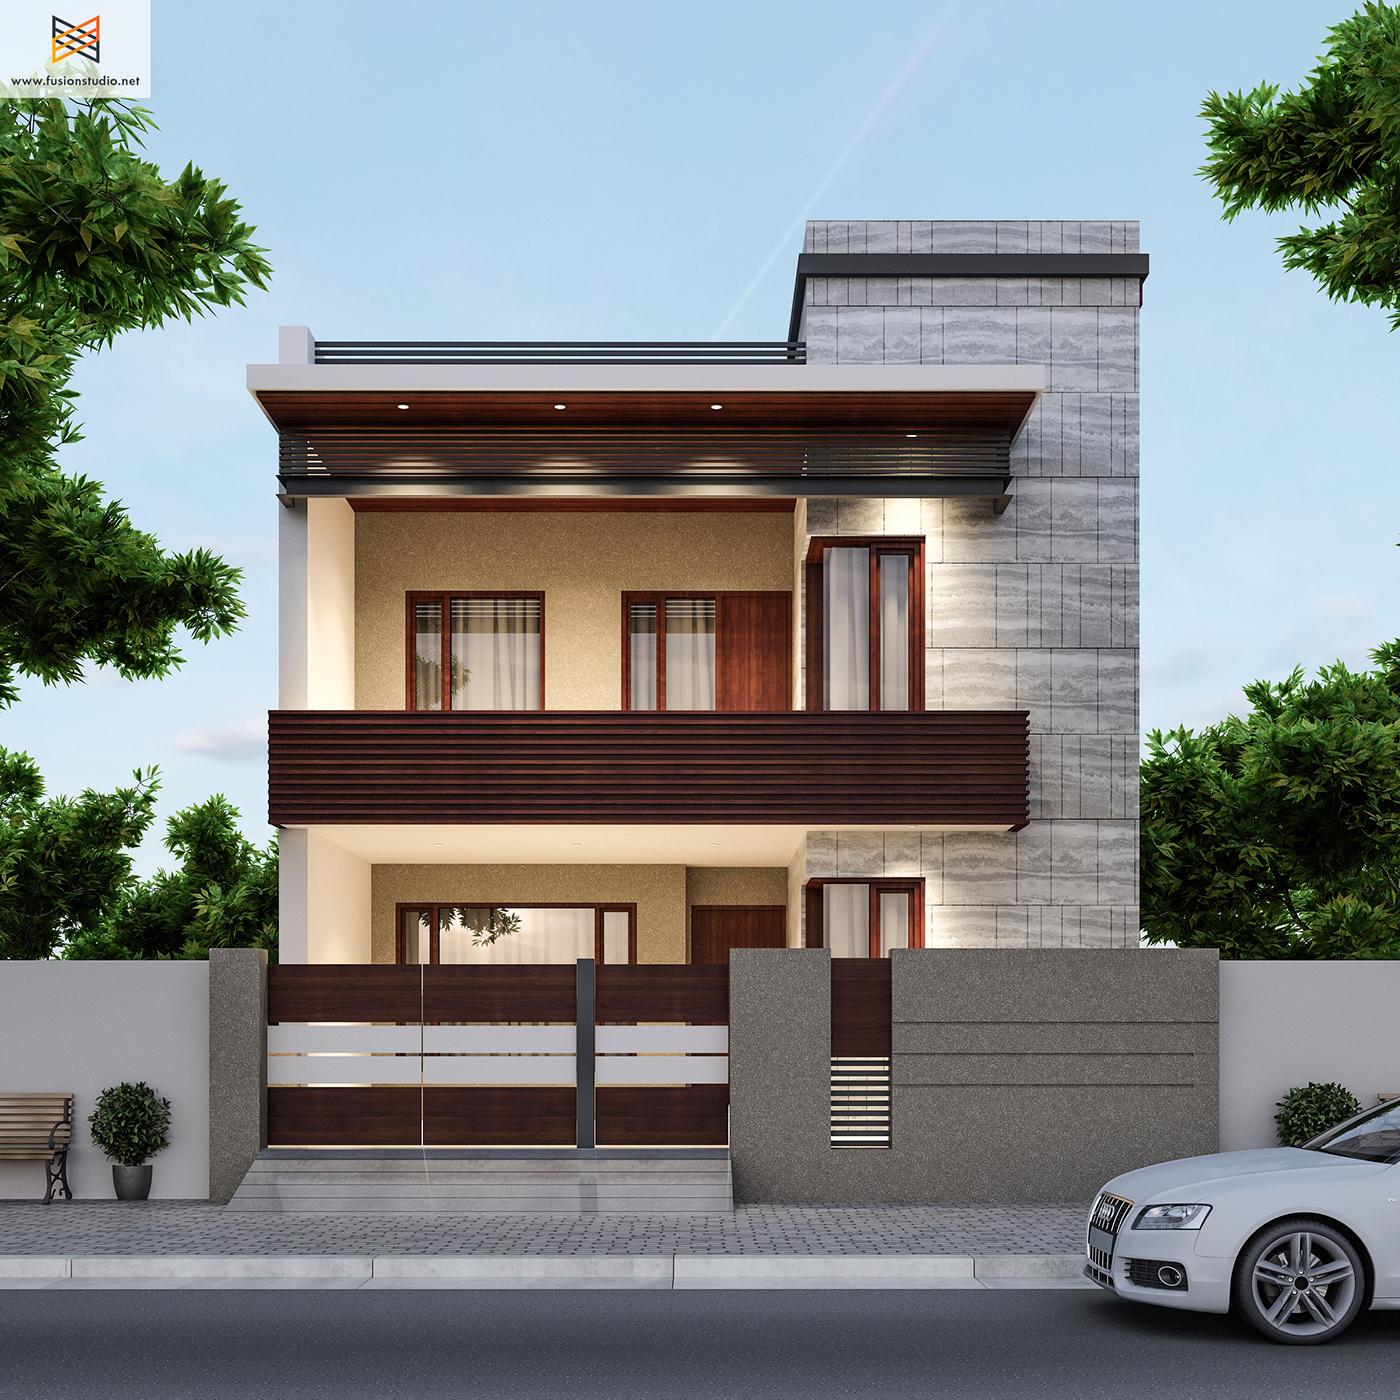 250 Yards House Elevation On Behance